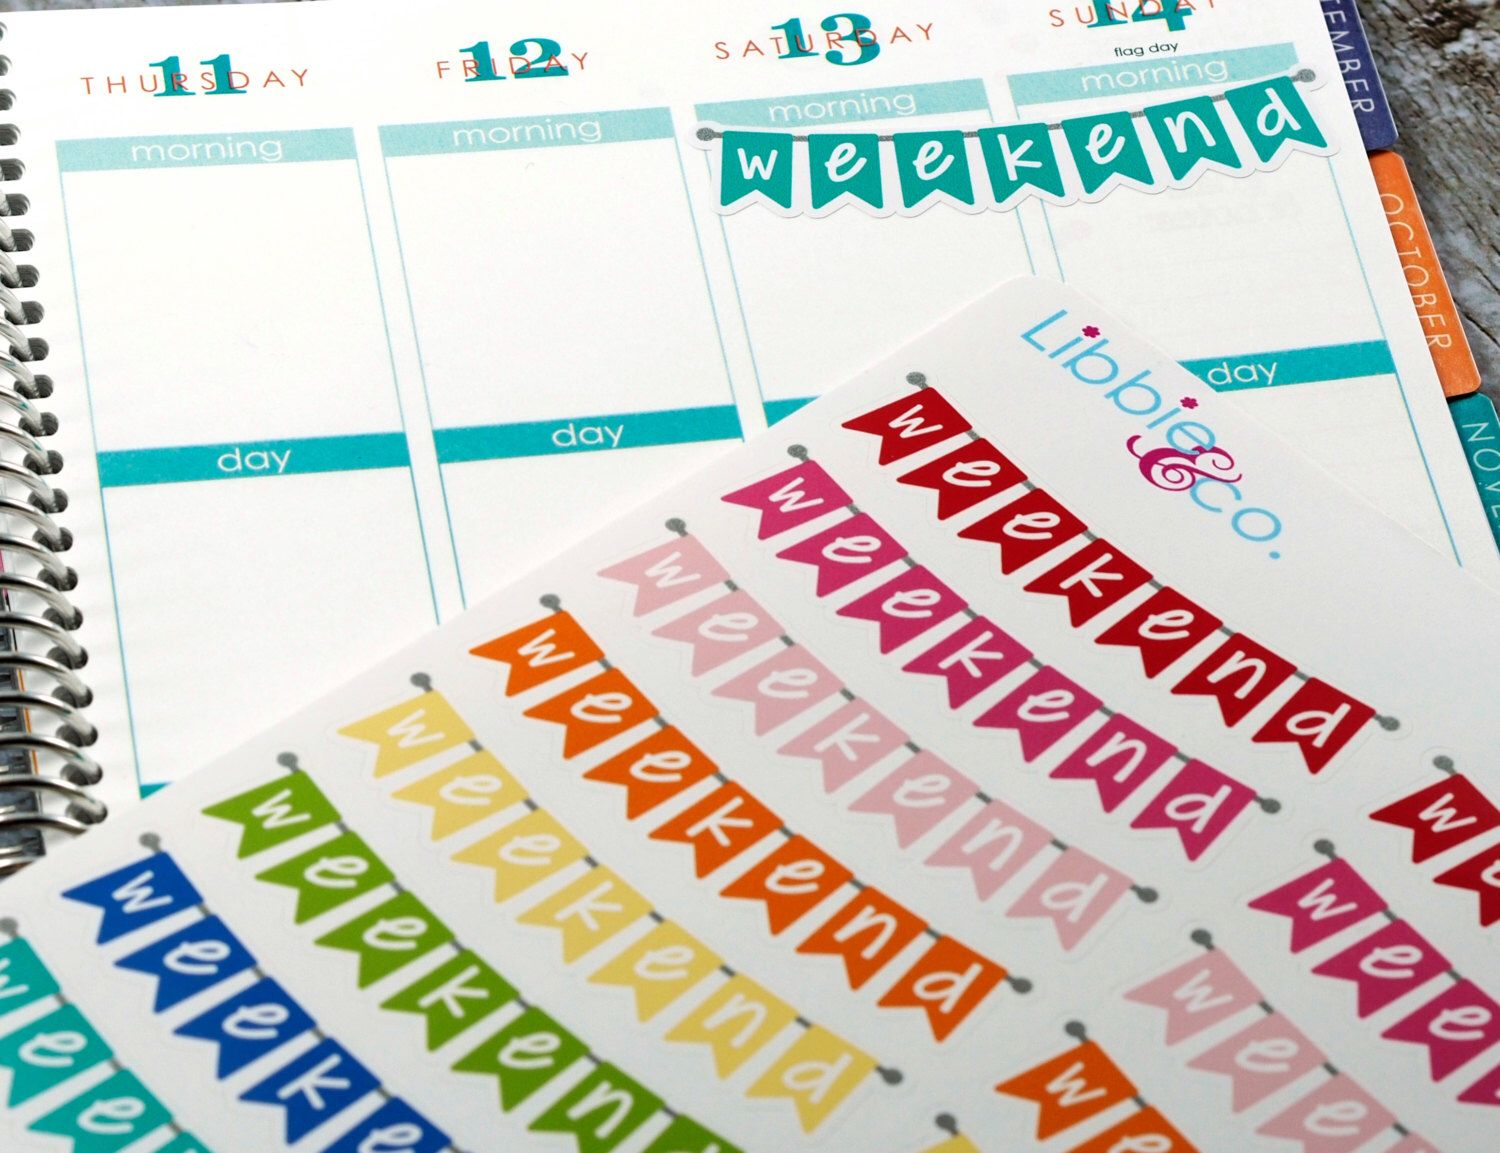 Rainbow Weekend Banner Stickers! Weekend Stickers Set of 22 Perfect for the Erin Condren Planner!!! HTC21 by Libbieandco on Etsy https://www.etsy.com/listing/223692056/rainbow-weekend-banner-stickers-weekend